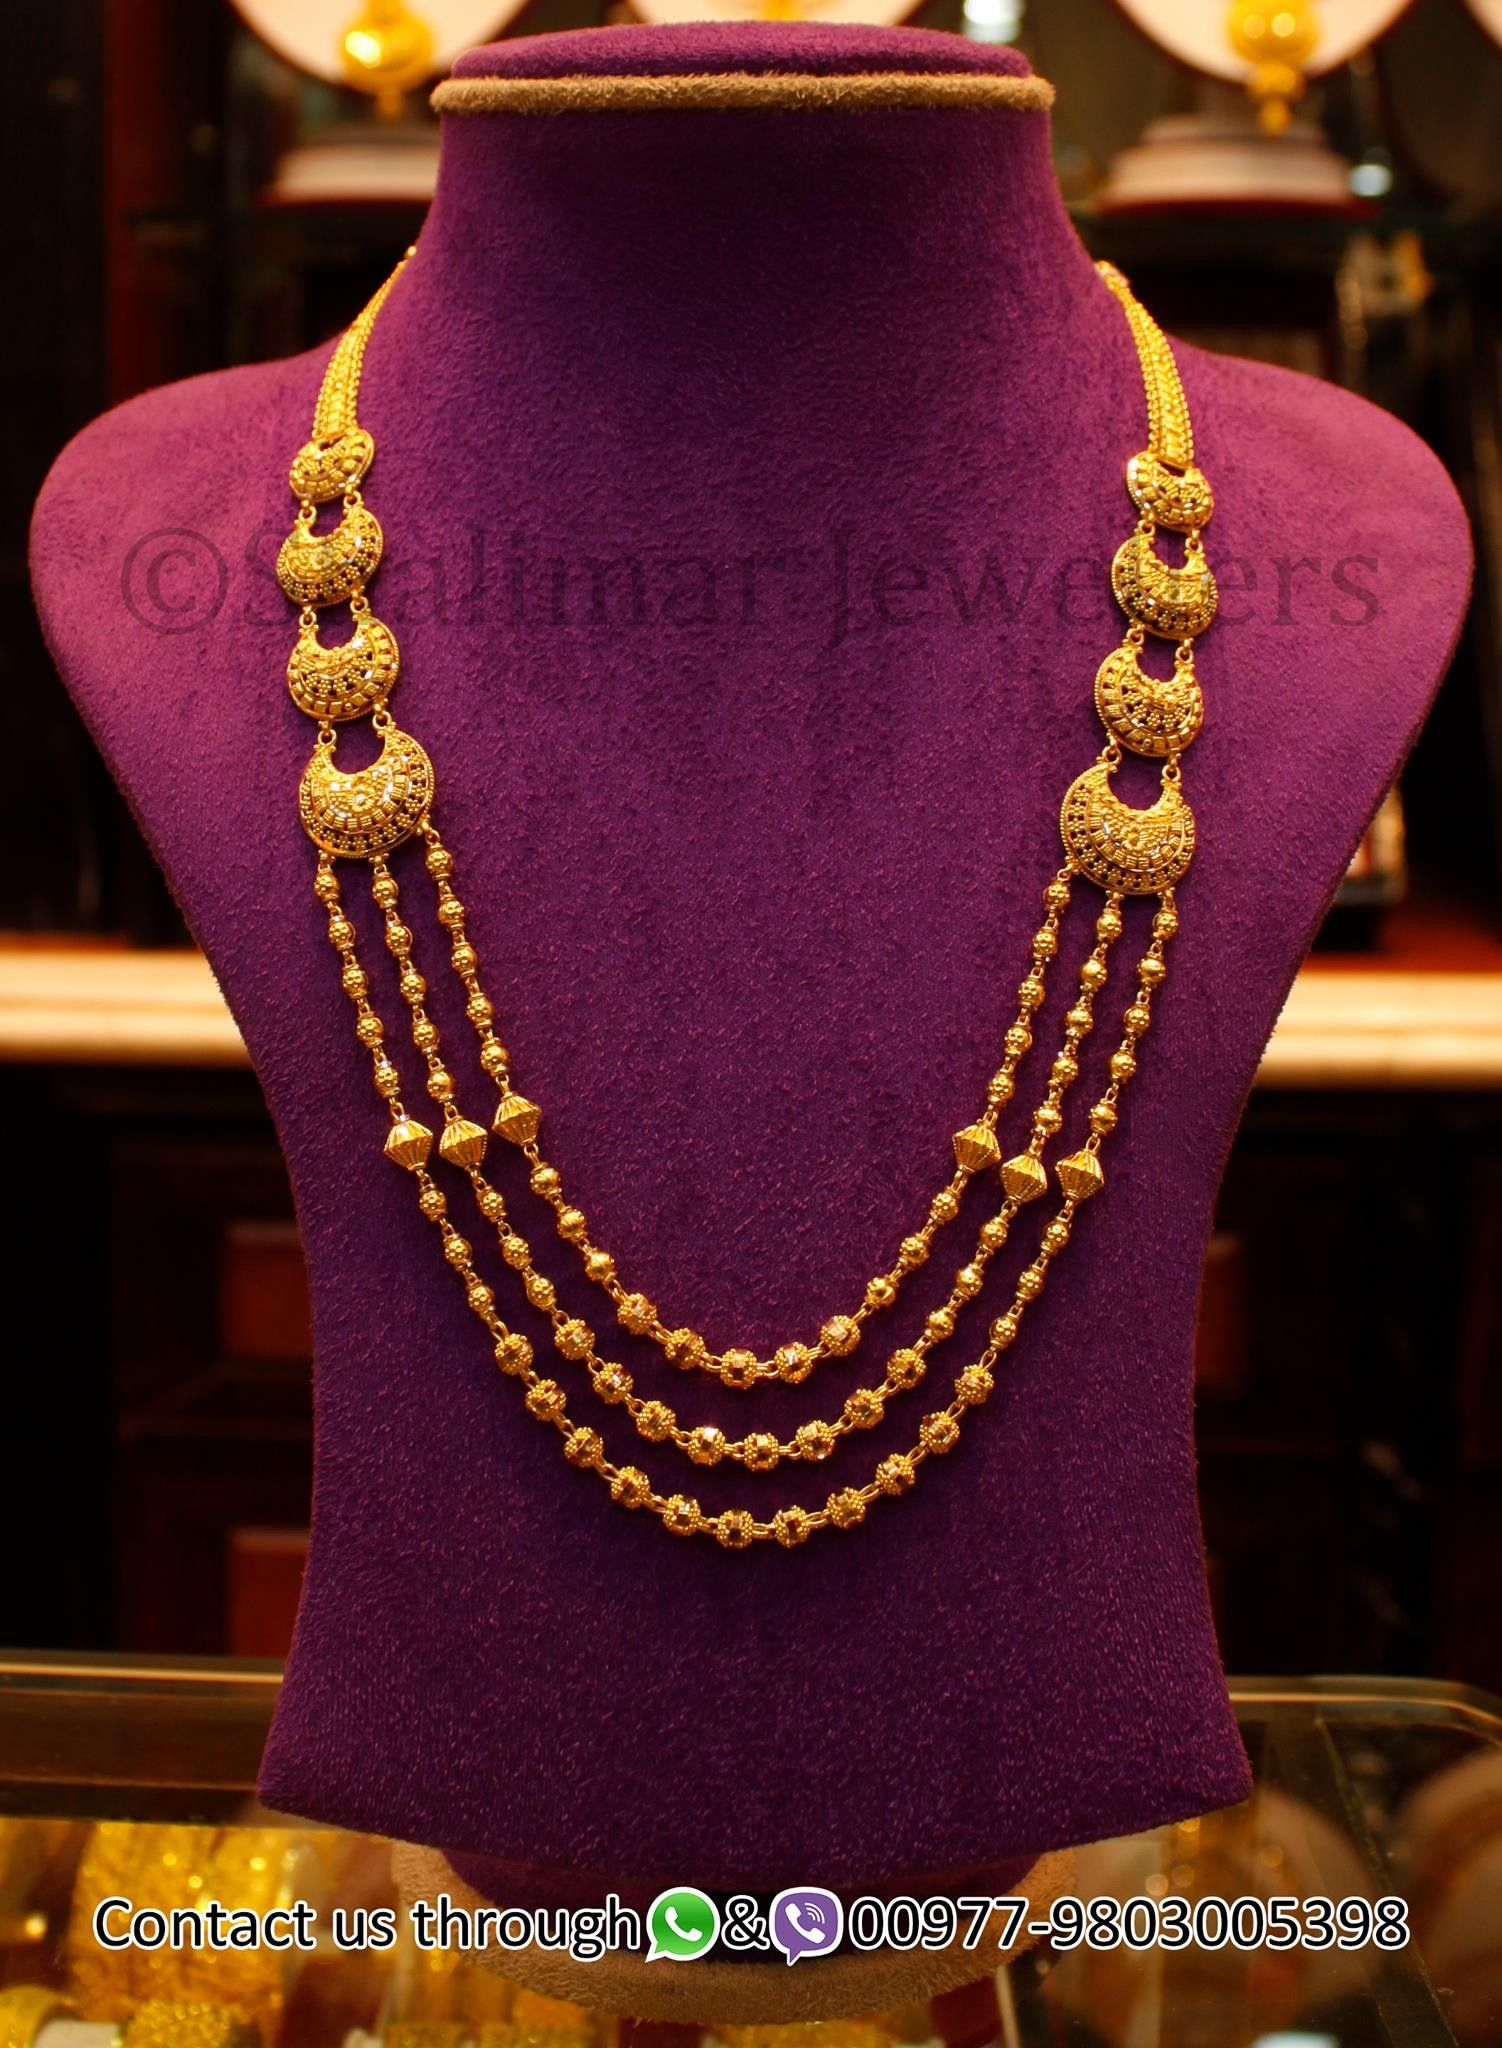 Gold rani haar pictures to pin on pinterest - Gold Jewelry